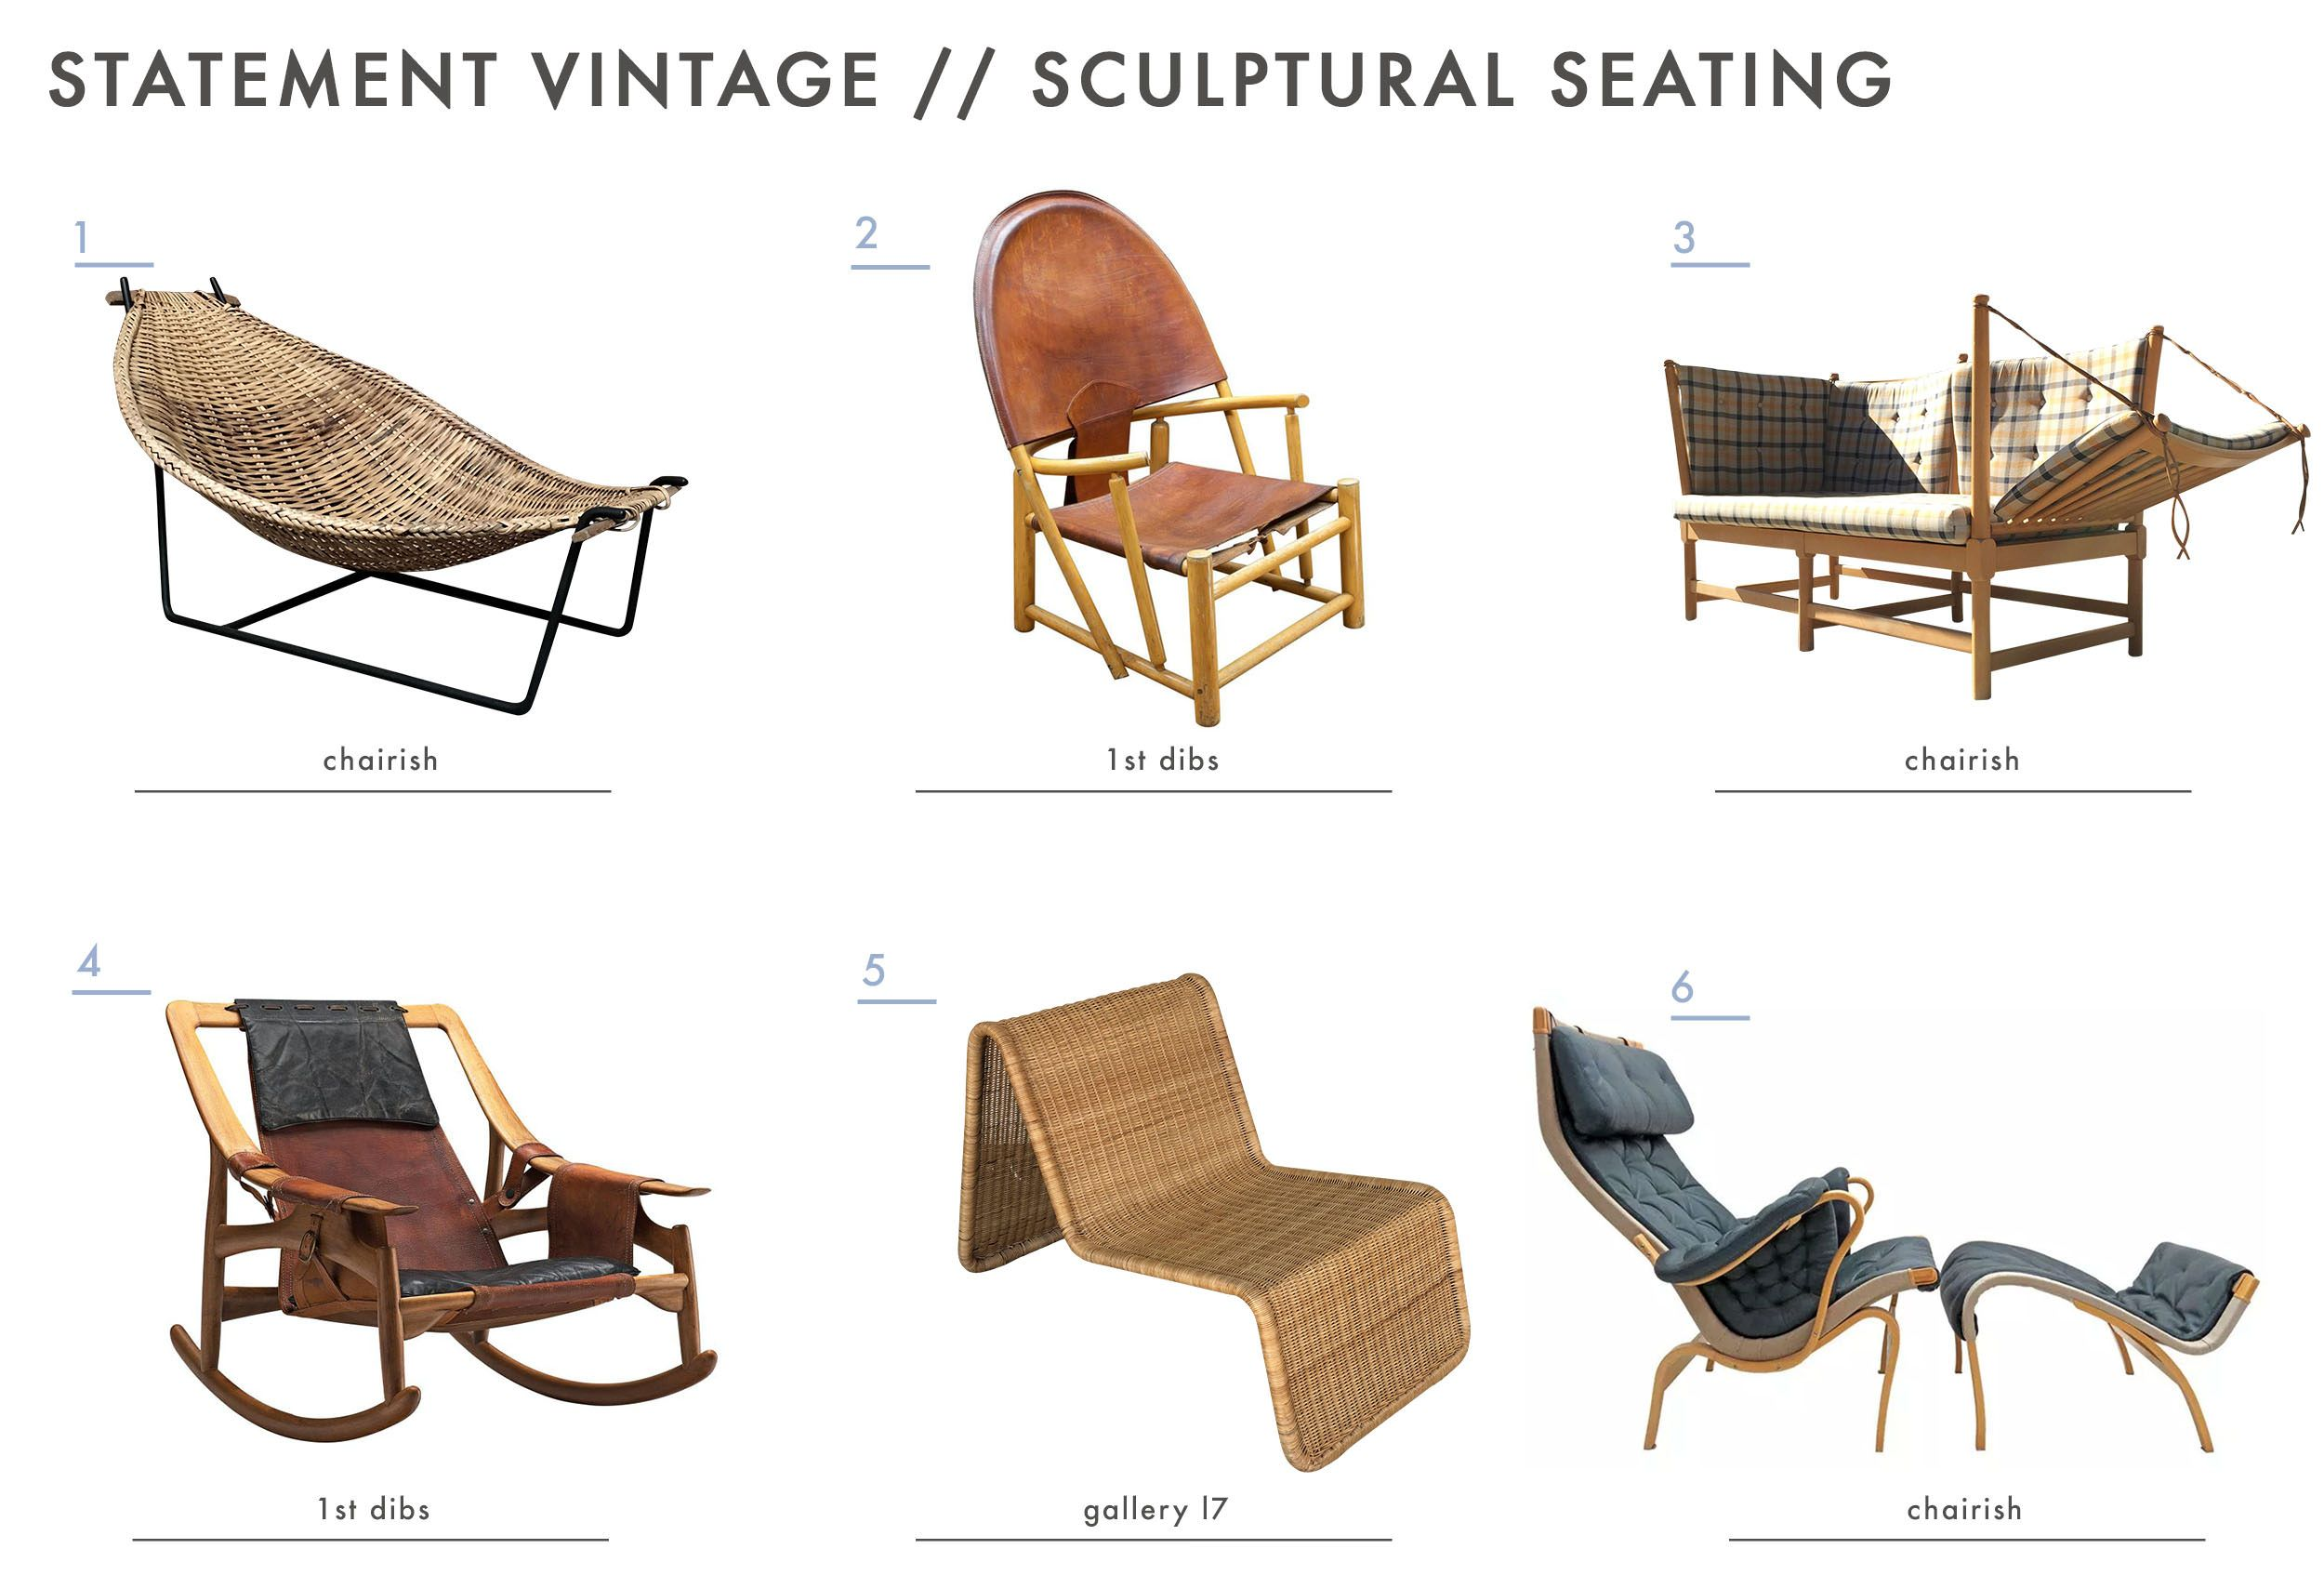 Garden Chairs Emily Henderson Mountain House Statement Vintage Seating Sculptural Home Style Interiors Homes